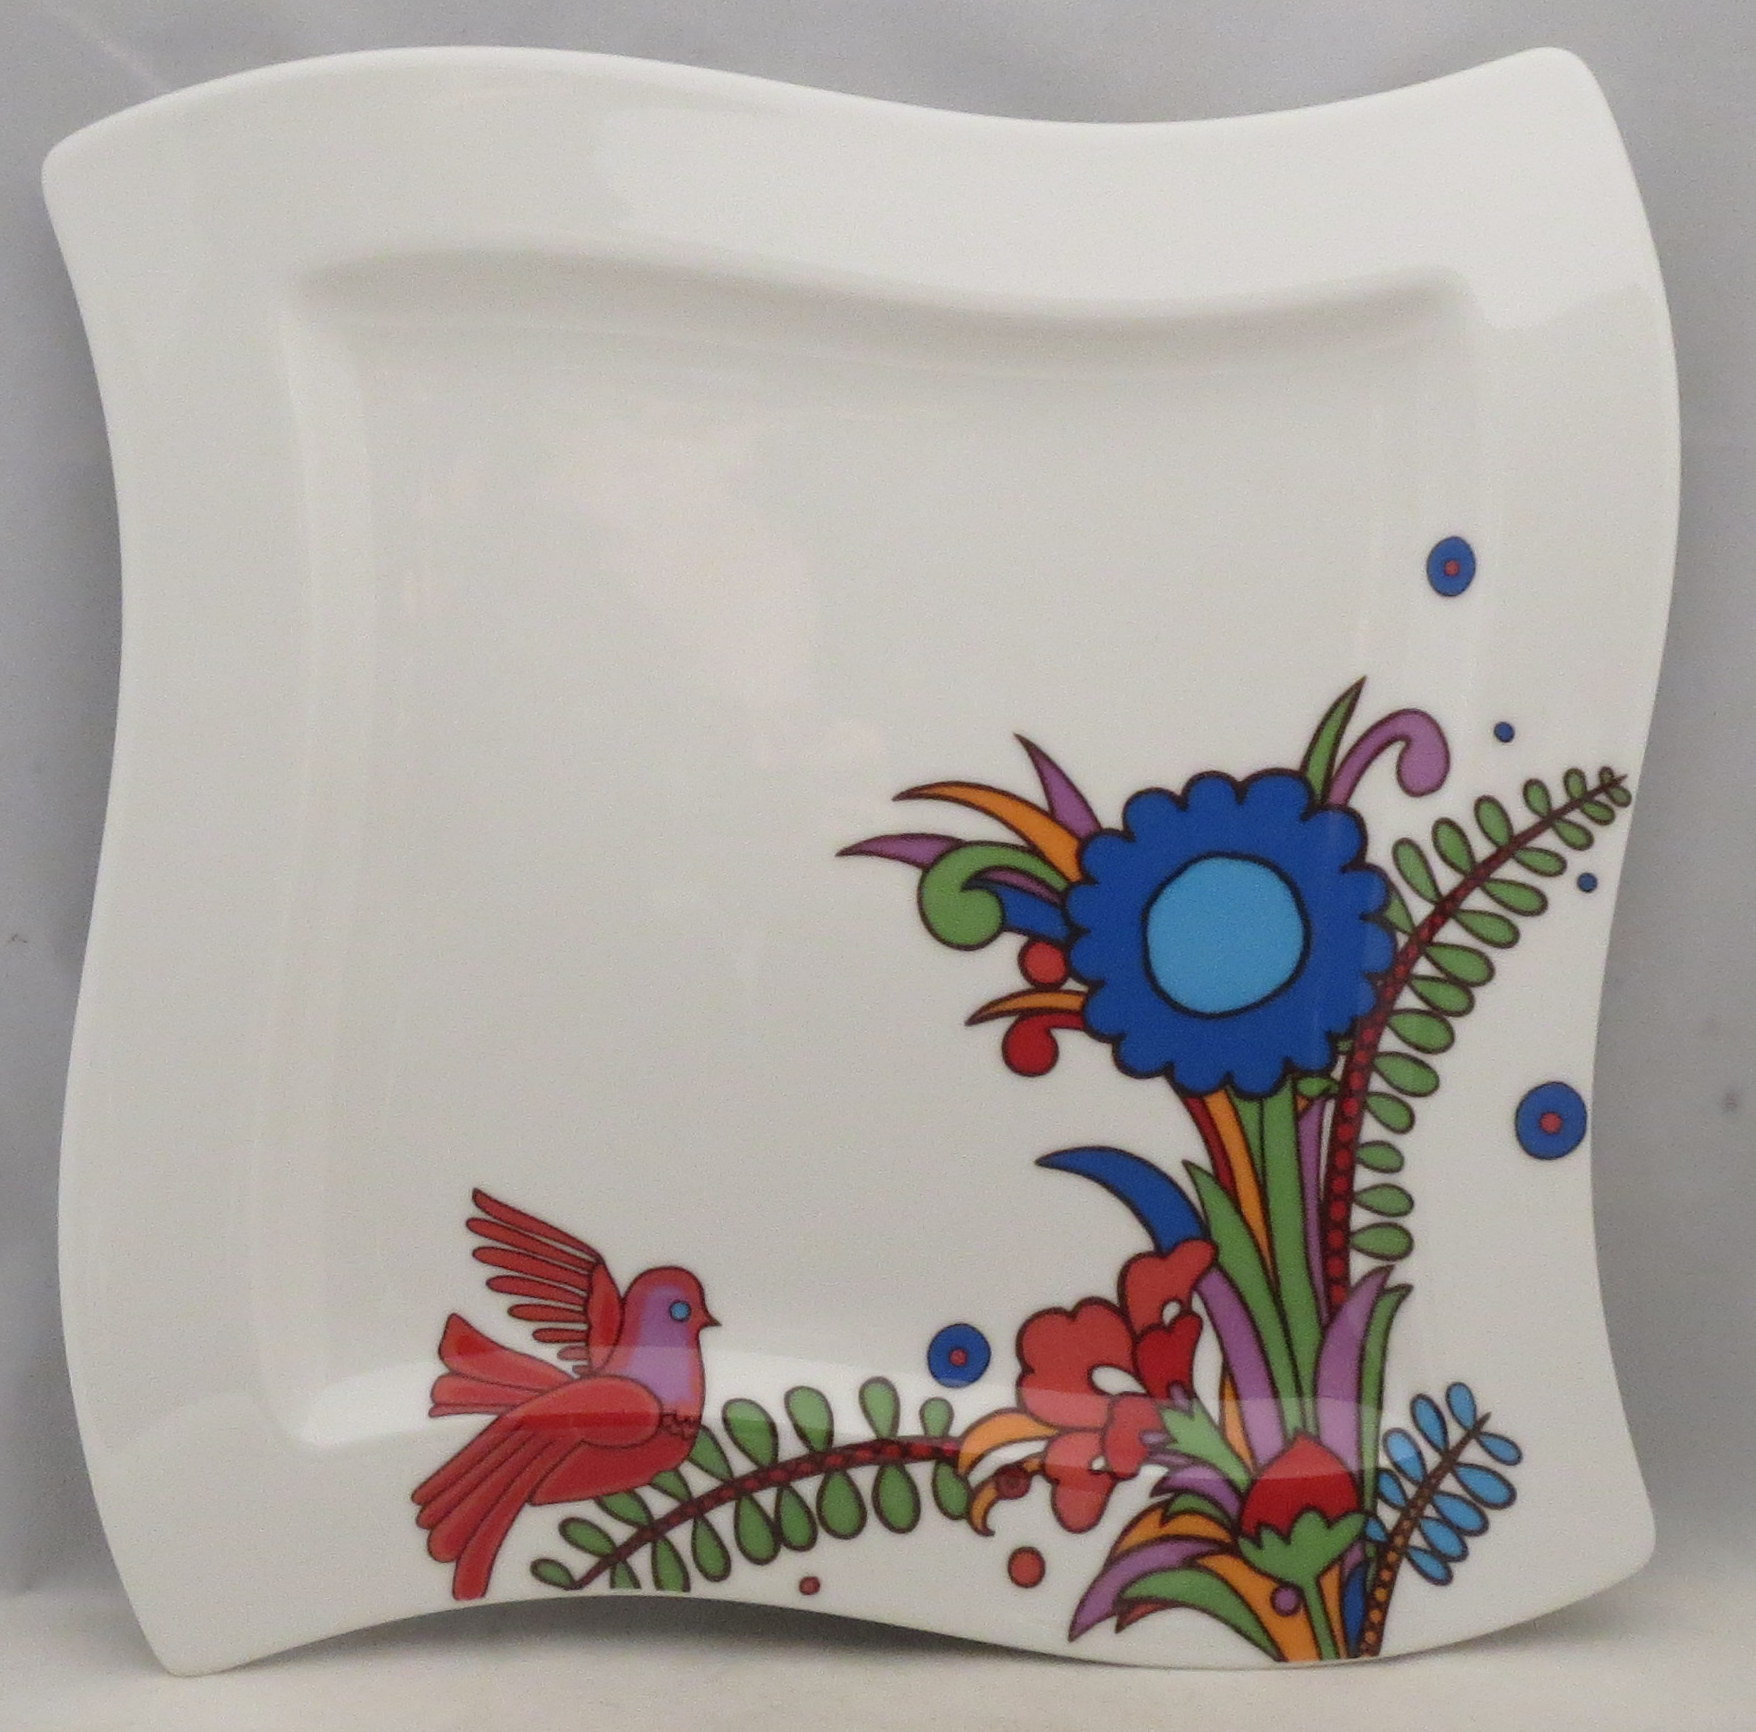 Imperfect Villeroy /& Boch Intarsia Dinner Plate